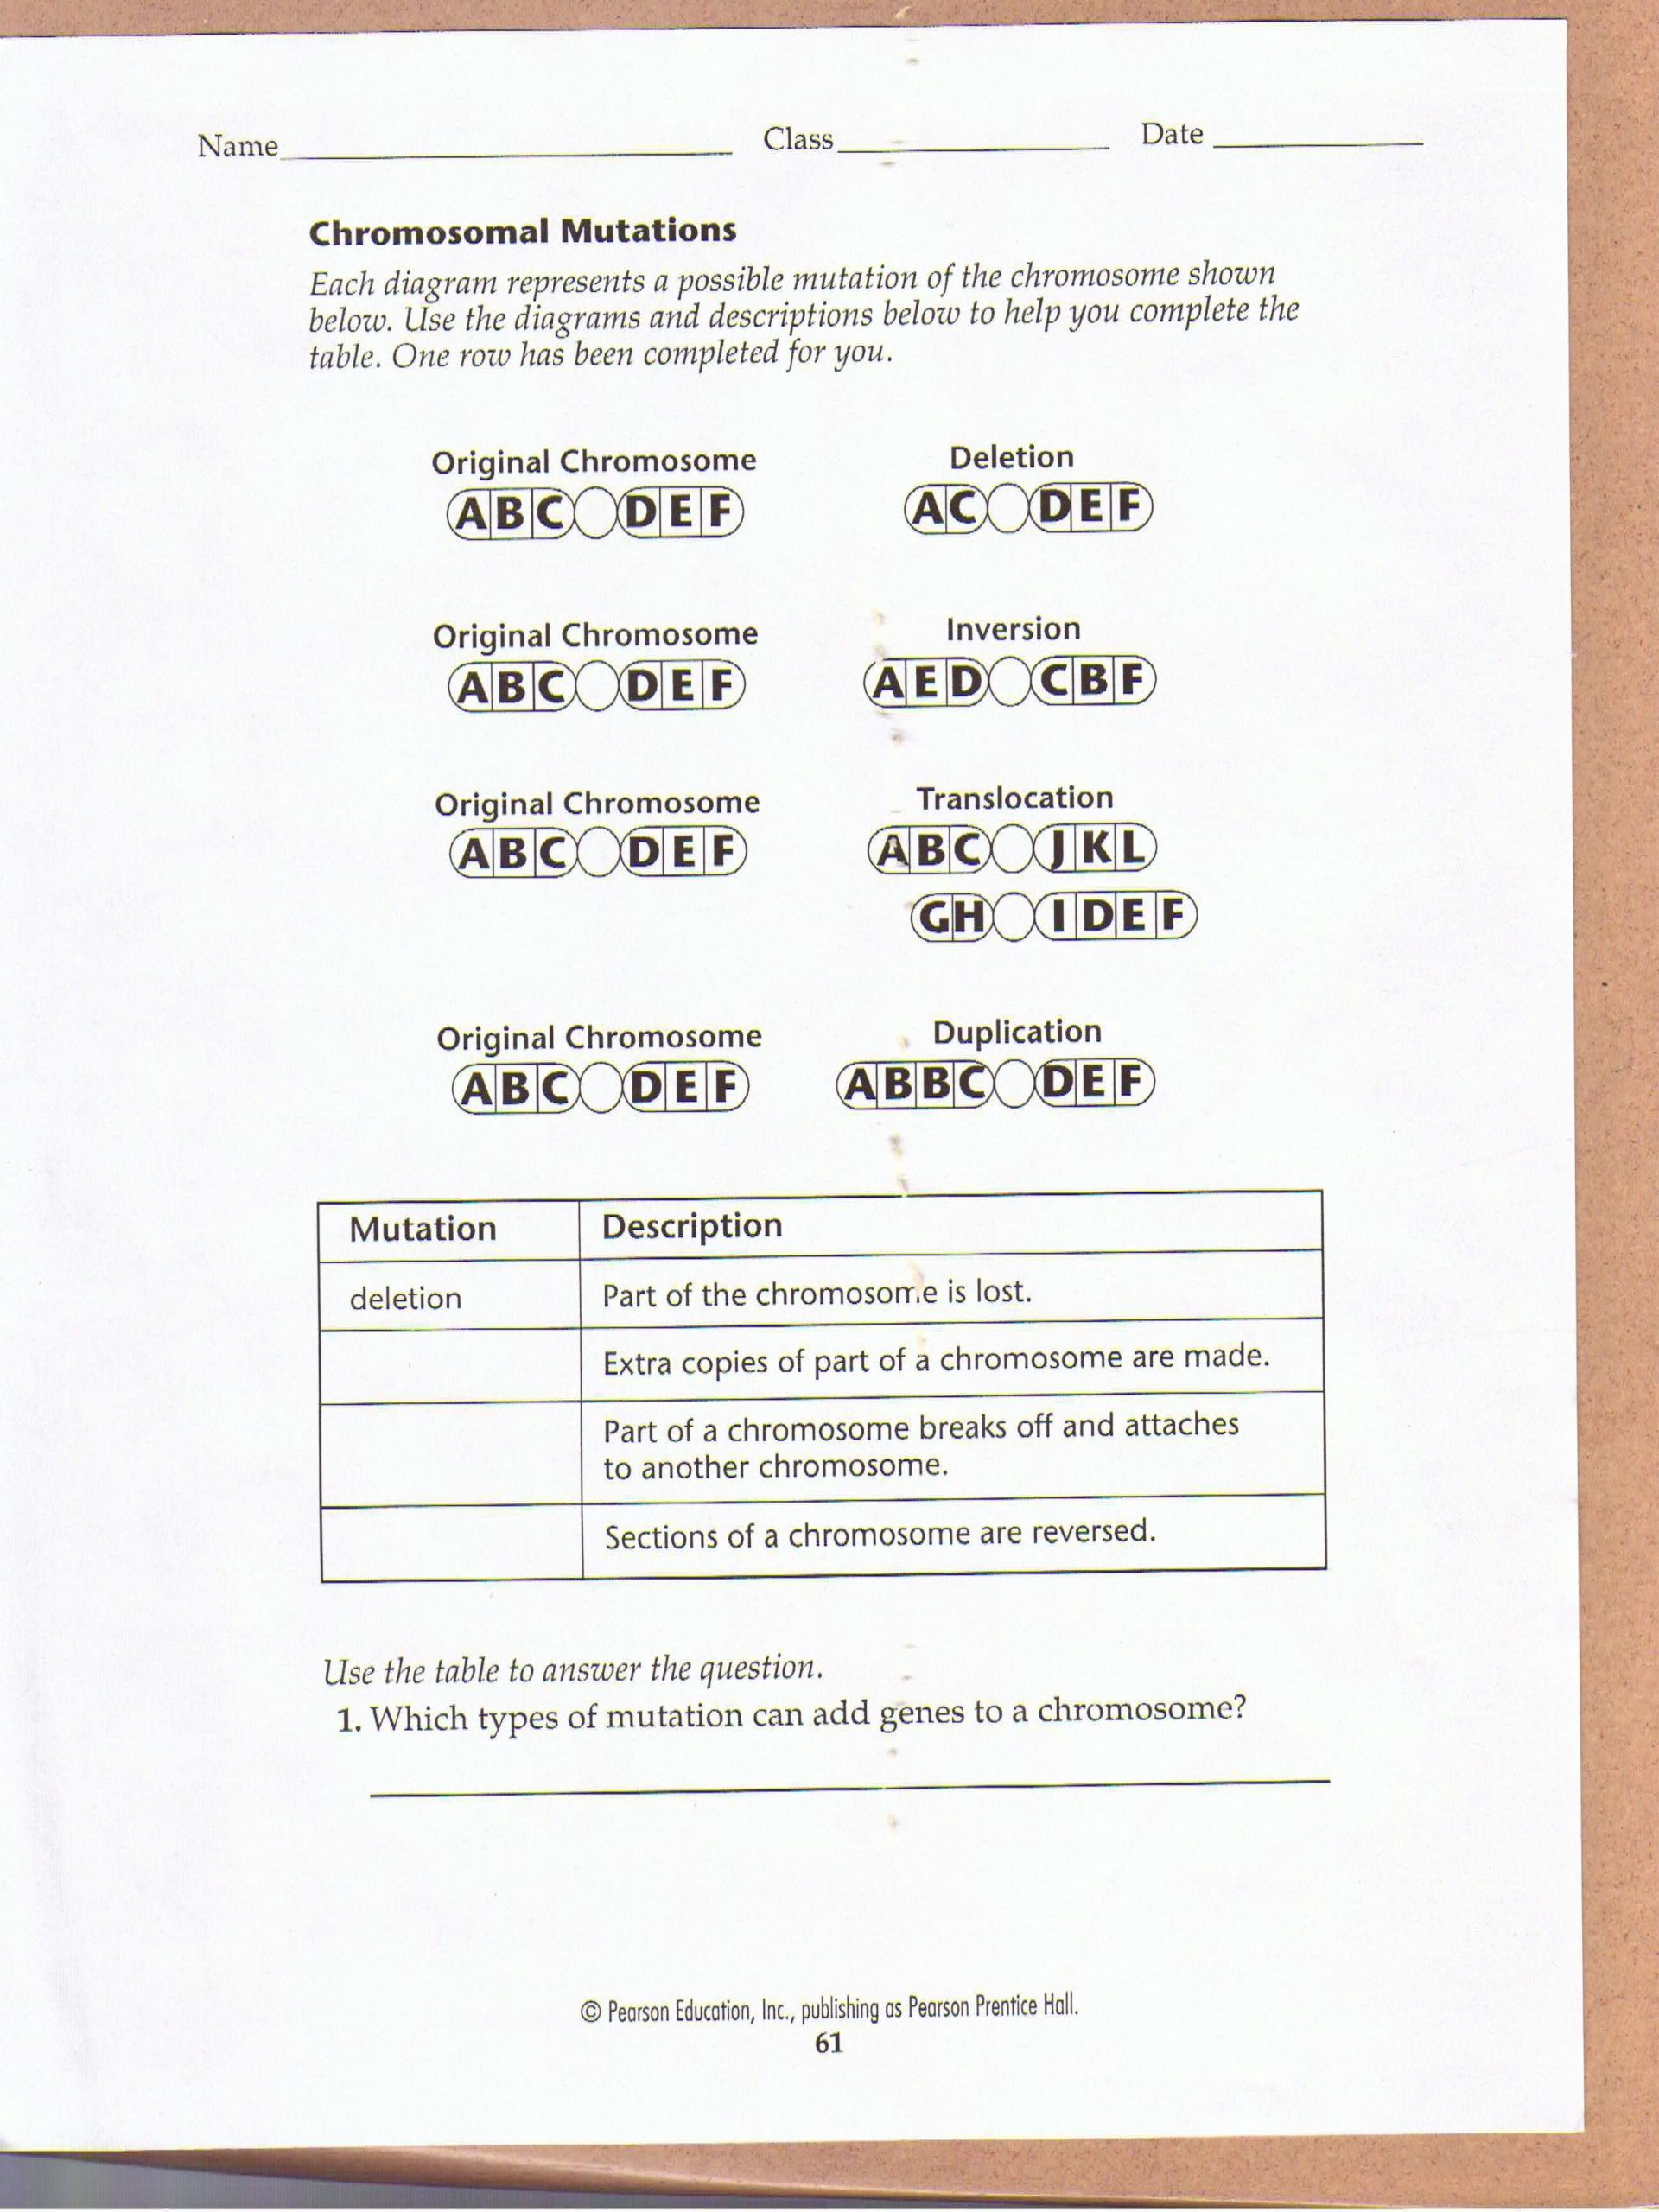 Mutations Worksheet High School Chromosomal Mutations Worksheet